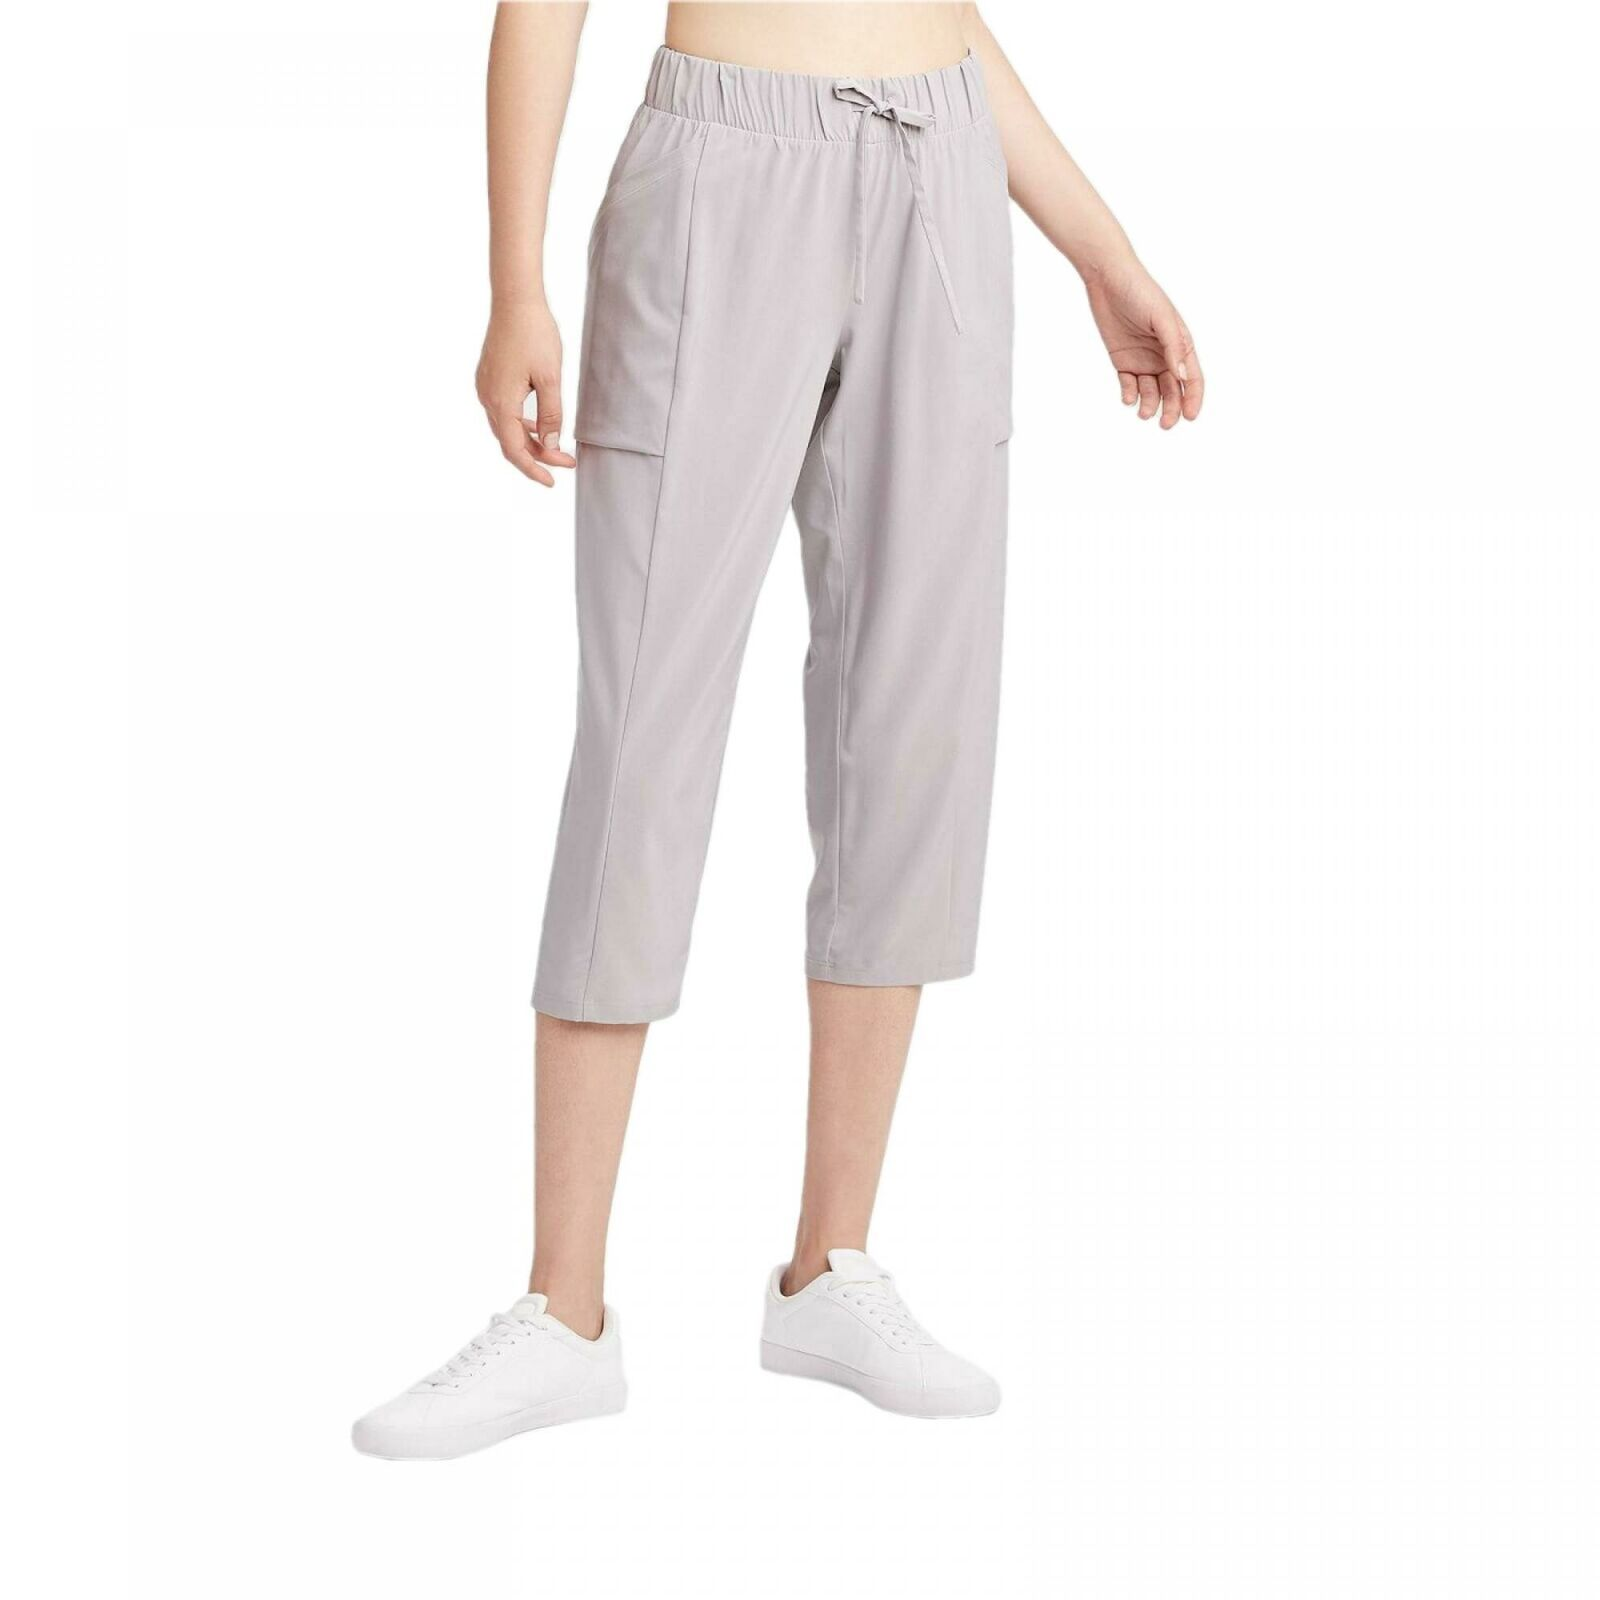 Primary image for All in Motion All In Motion Women's Stretch Woven Capri Pants Light Grey